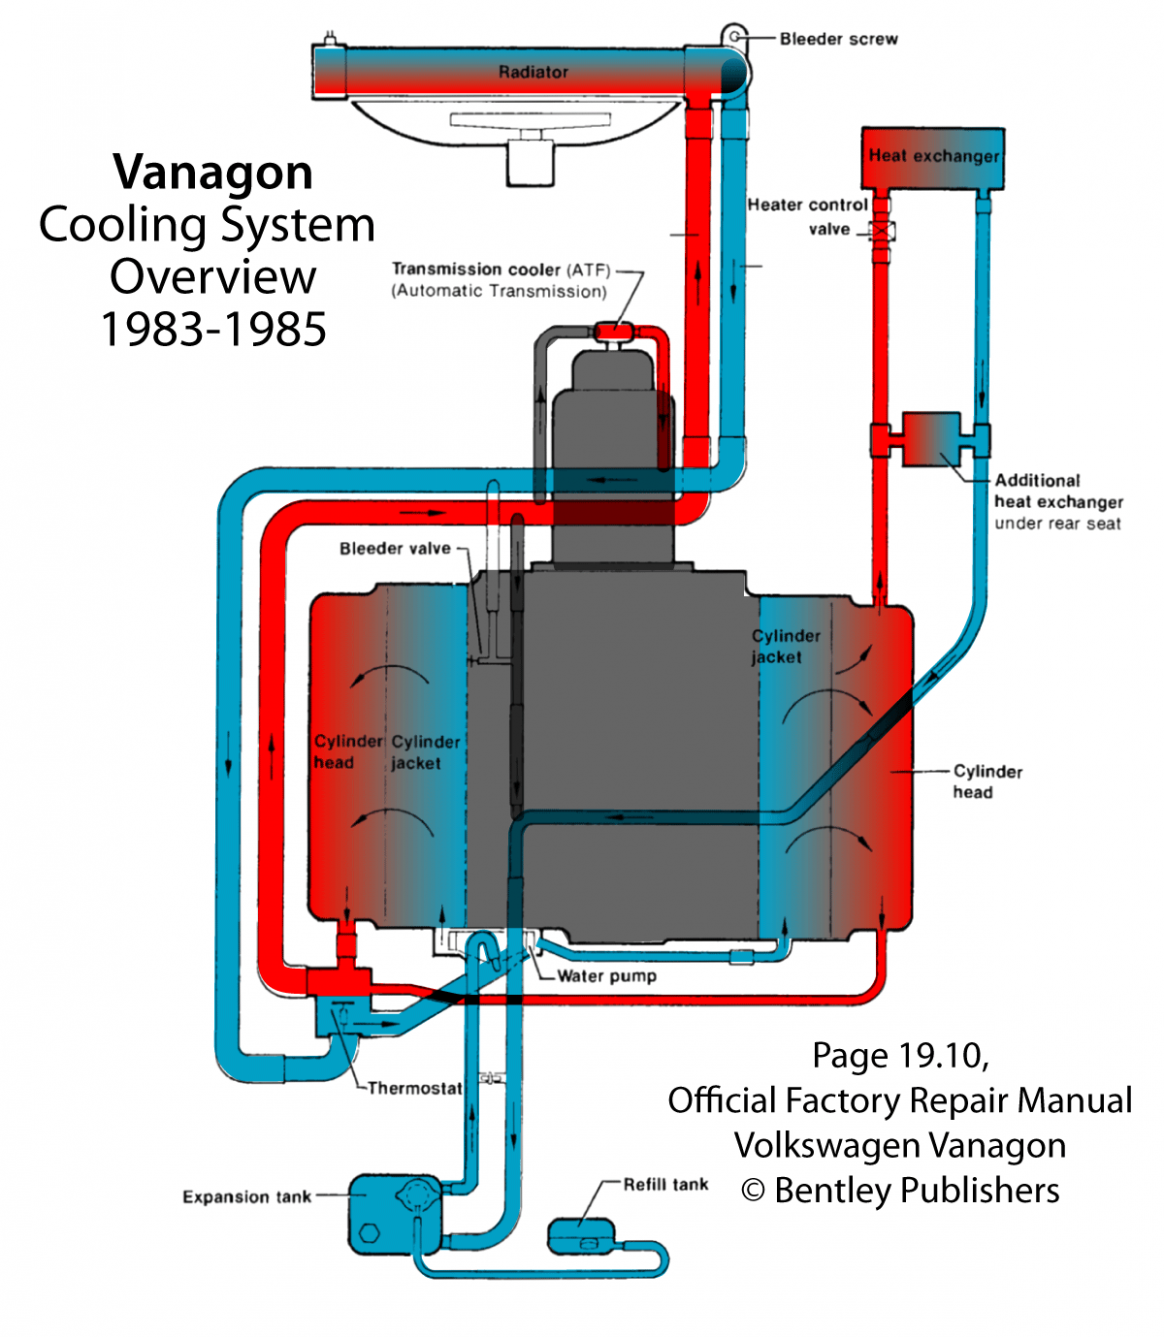 Vanagon Cooling System Overview Camp Westfalia water